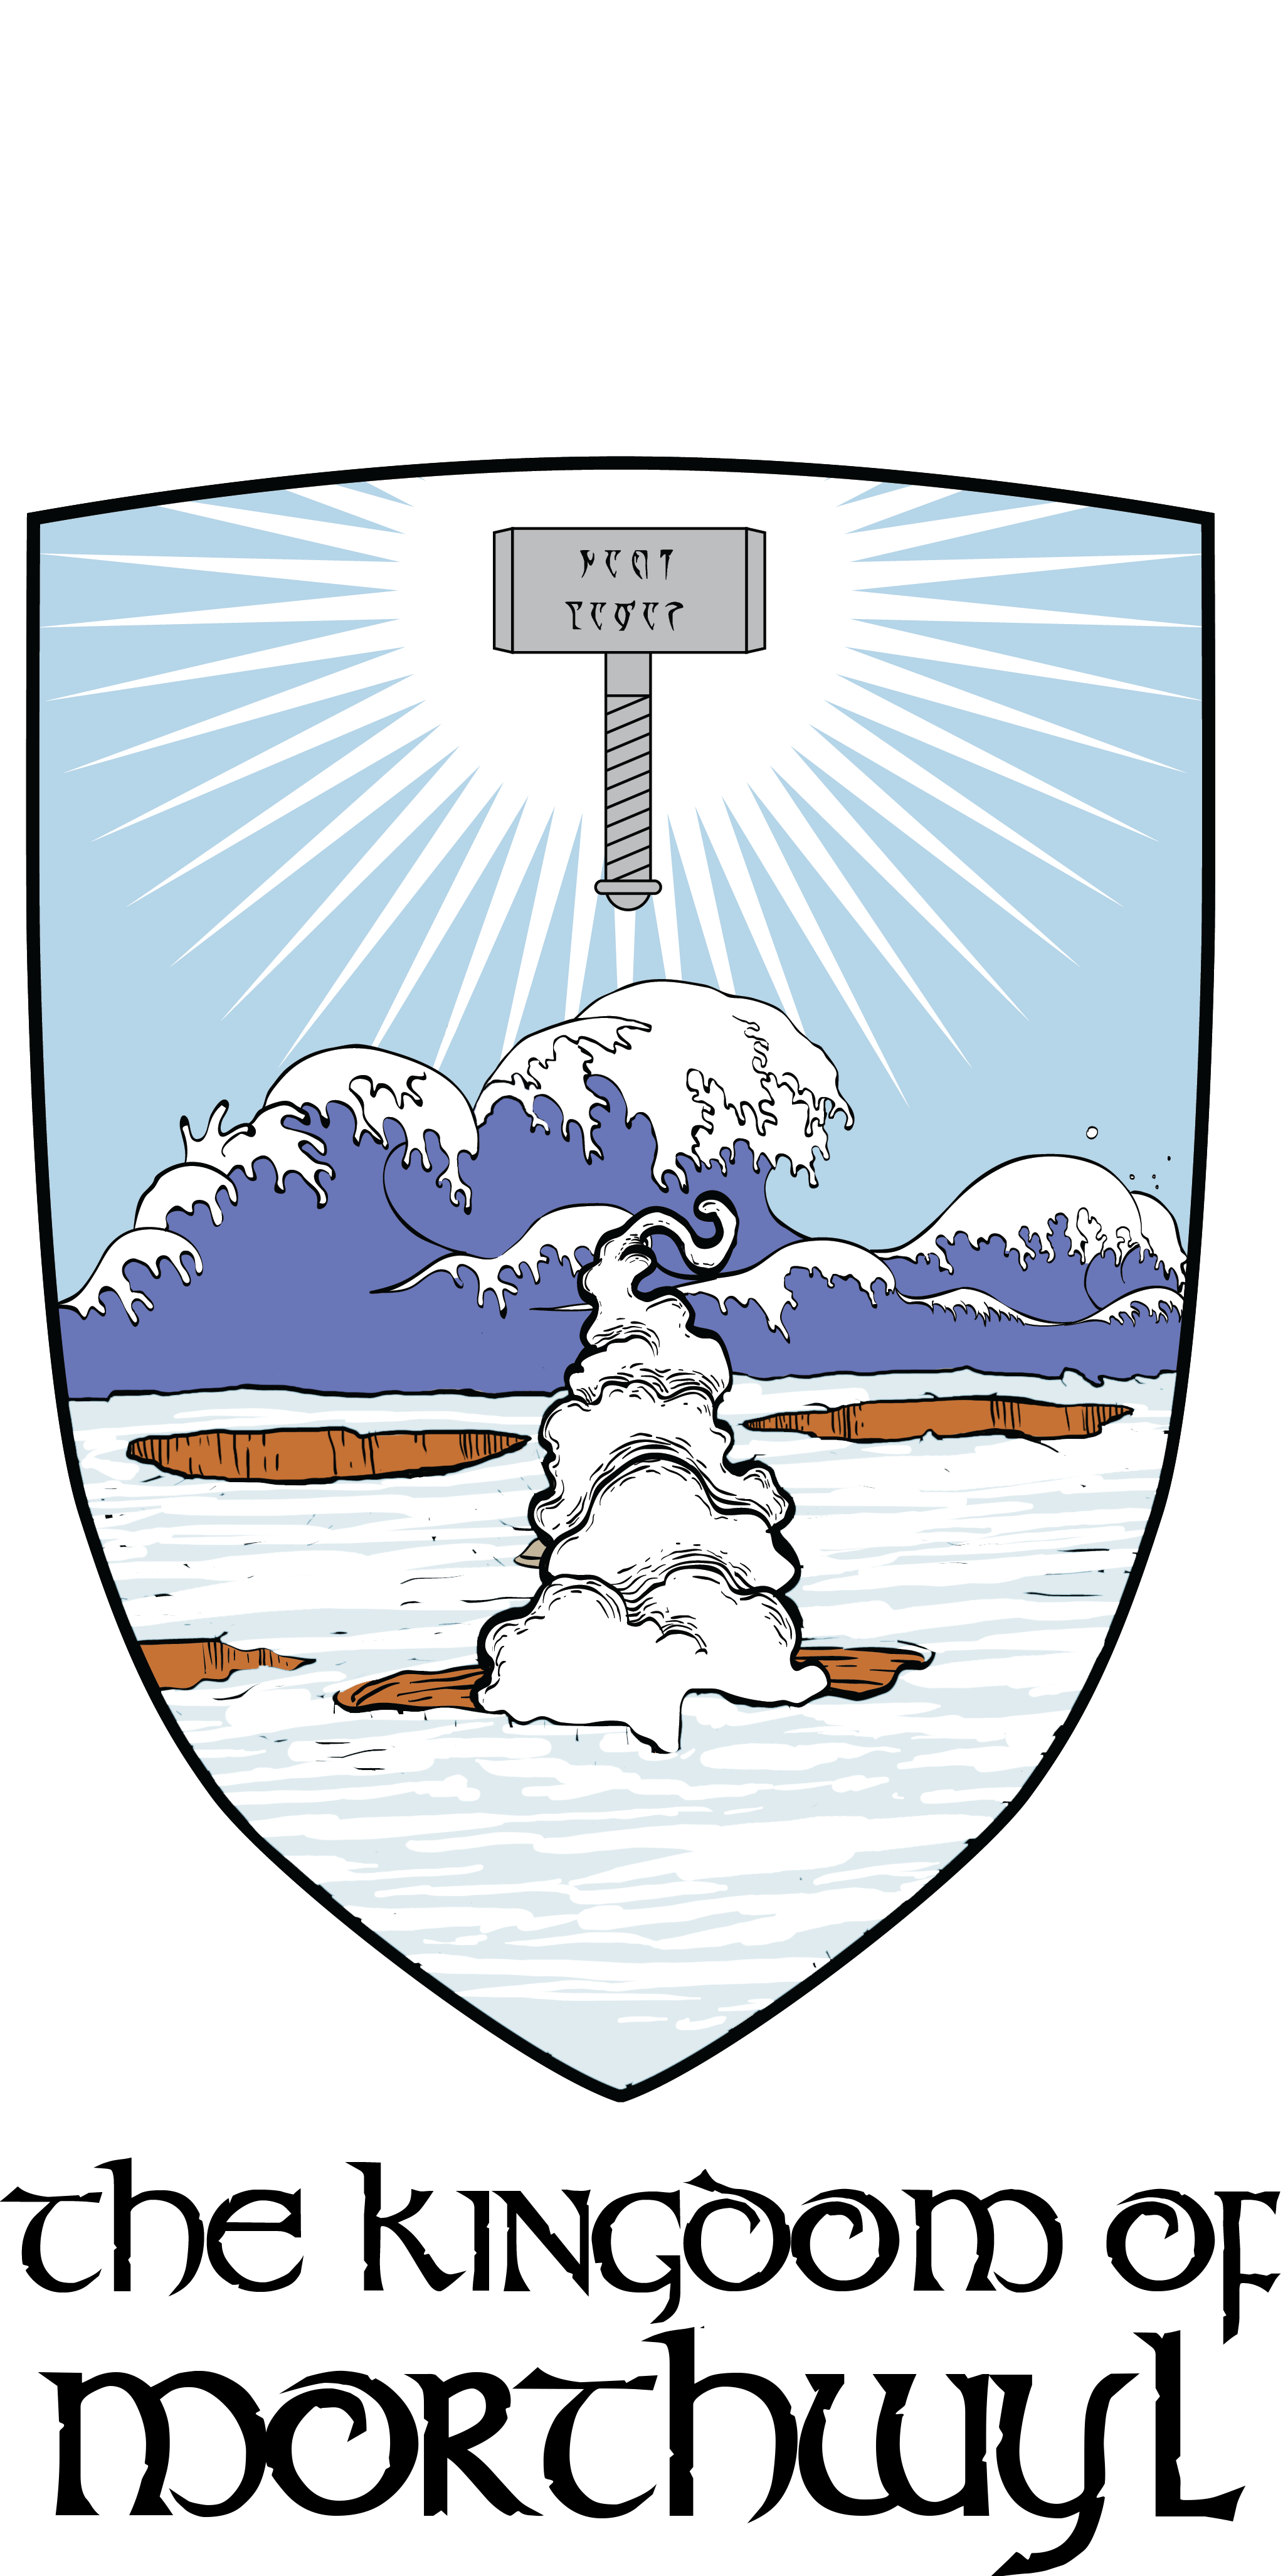 Coat of Arms Round 2